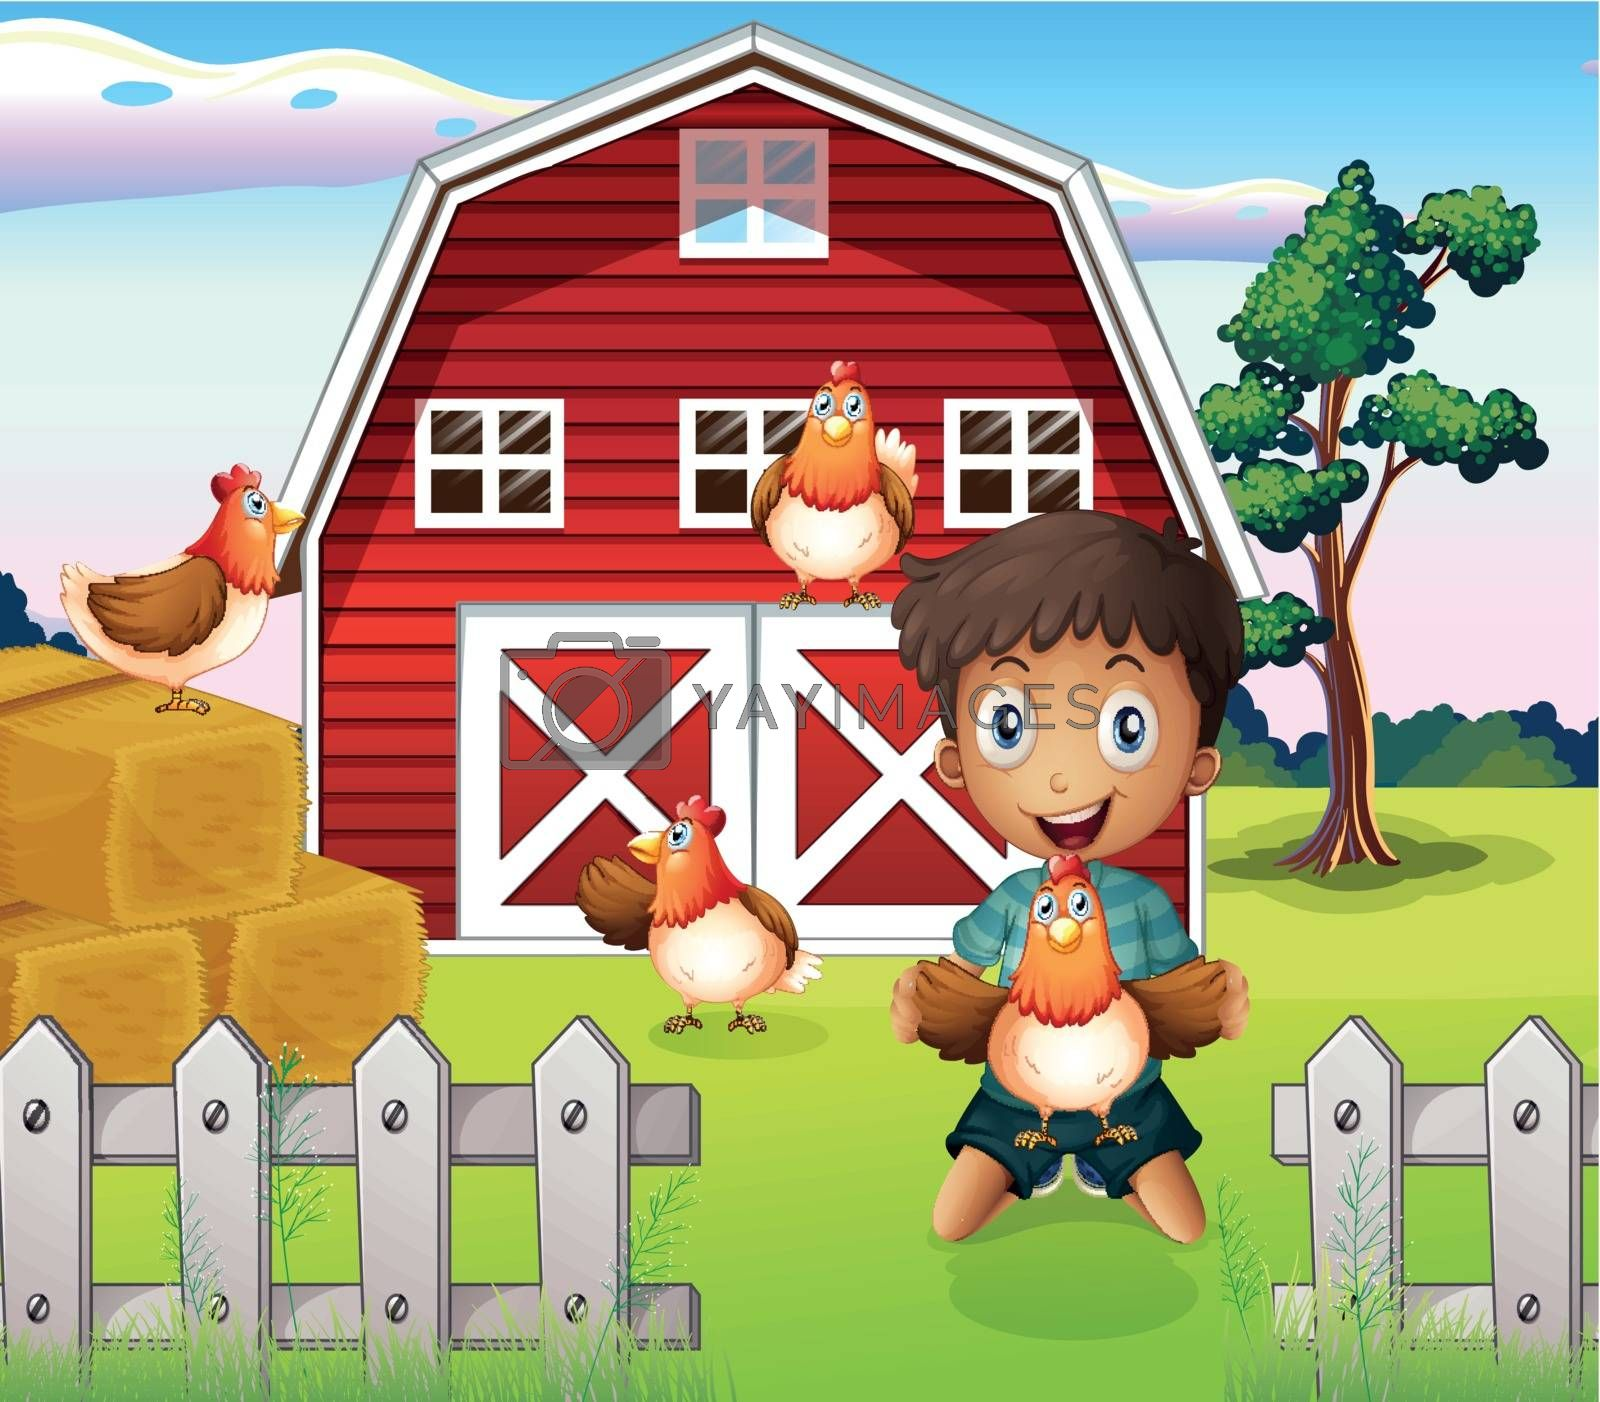 Illustration of a boy playing with his farm animals